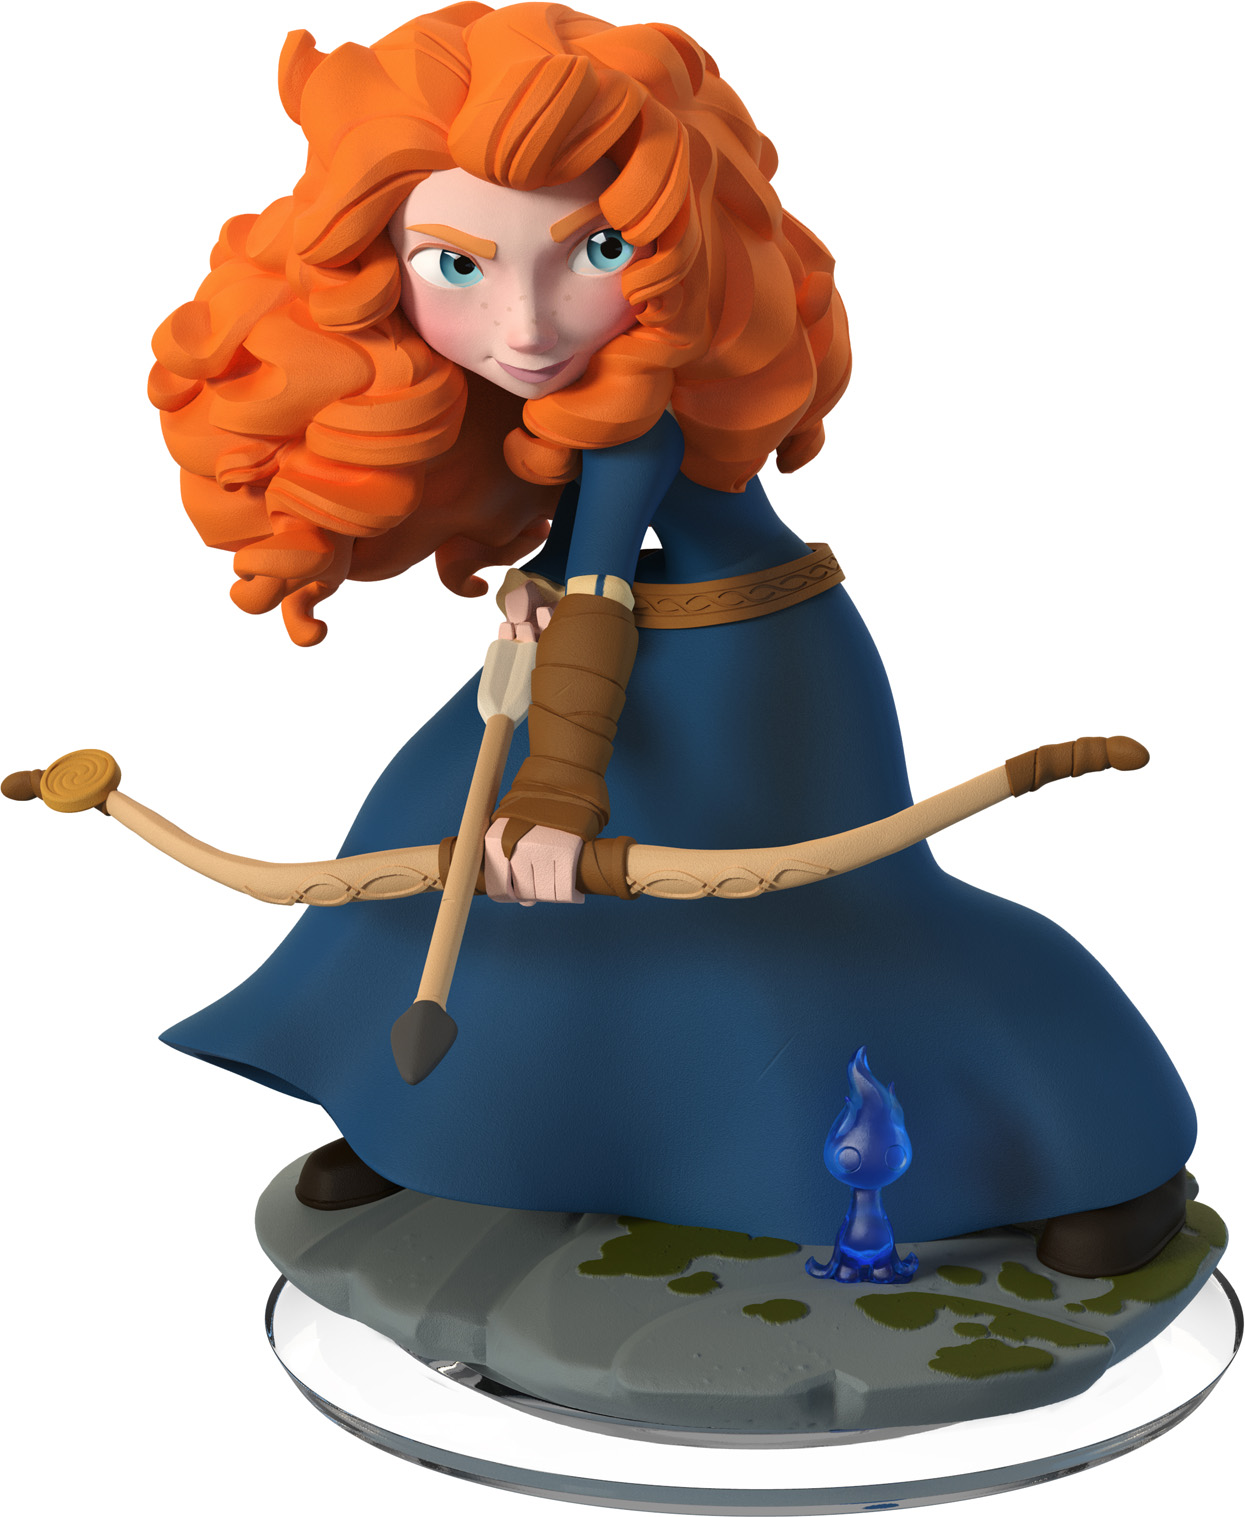 Disney Infinity 2.0 Figure: Disney Originals Merida